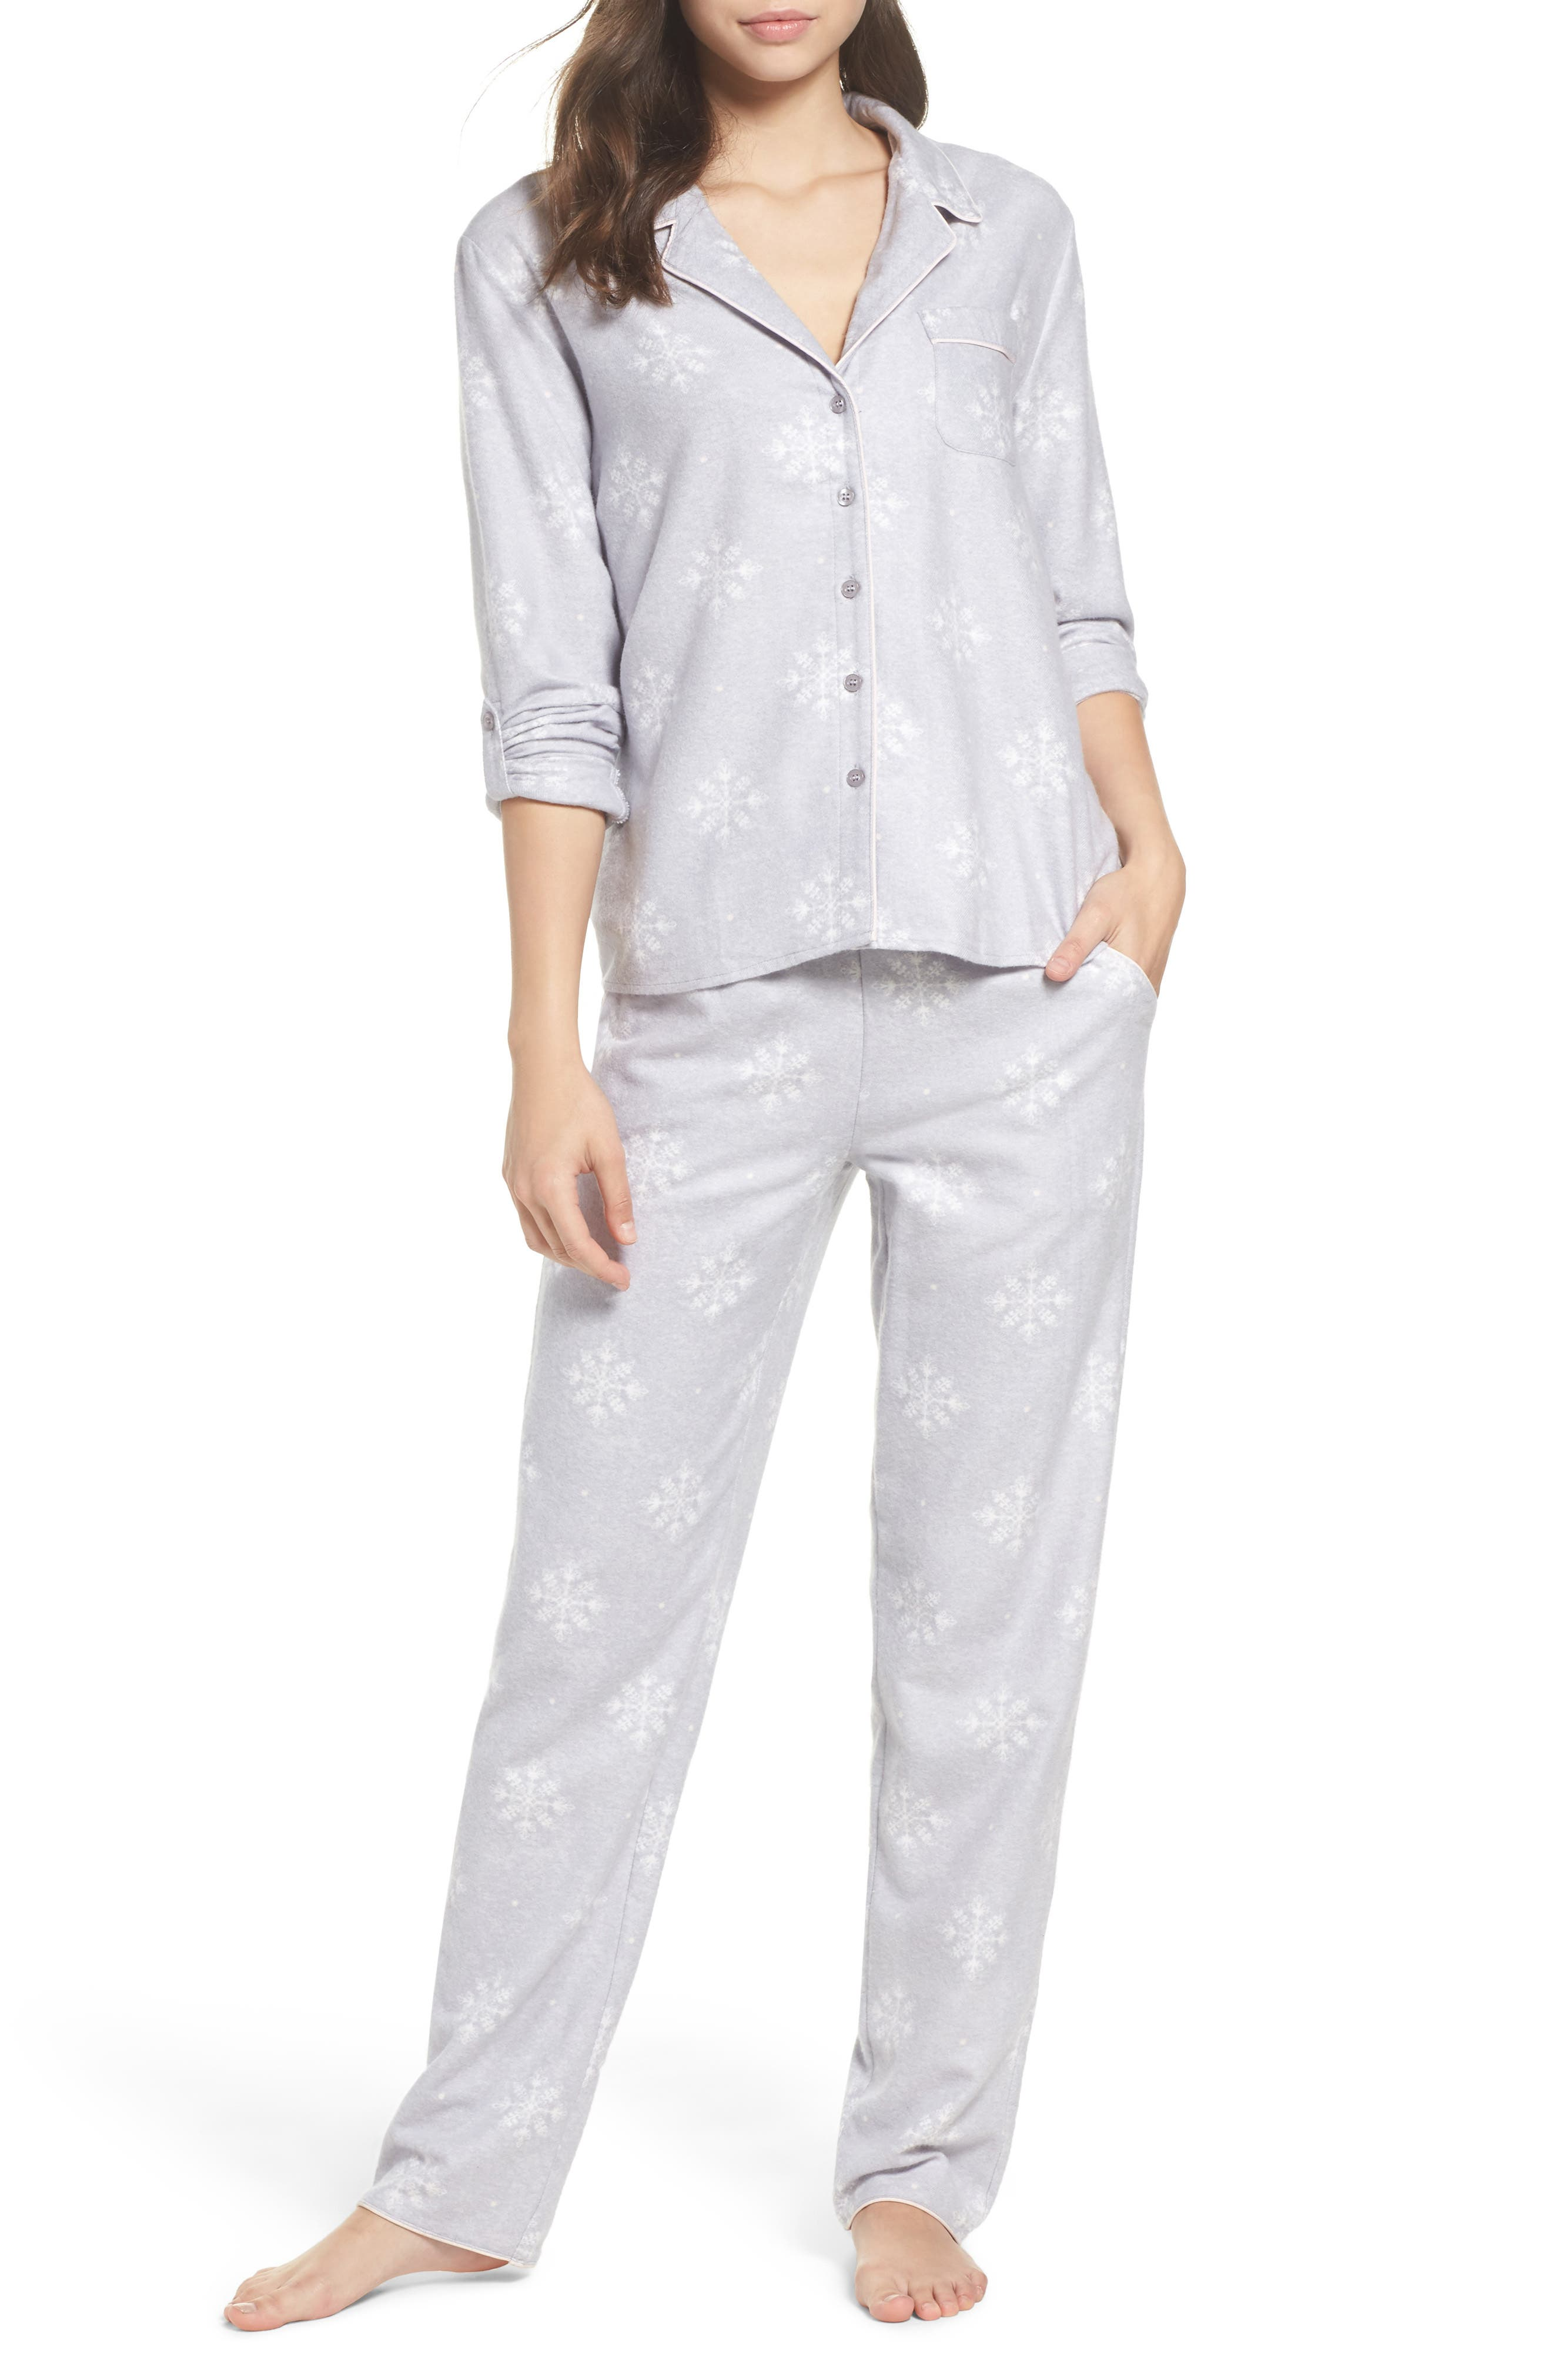 Lingerie Starlight Flannel Pajamas,                         Main,                         color,